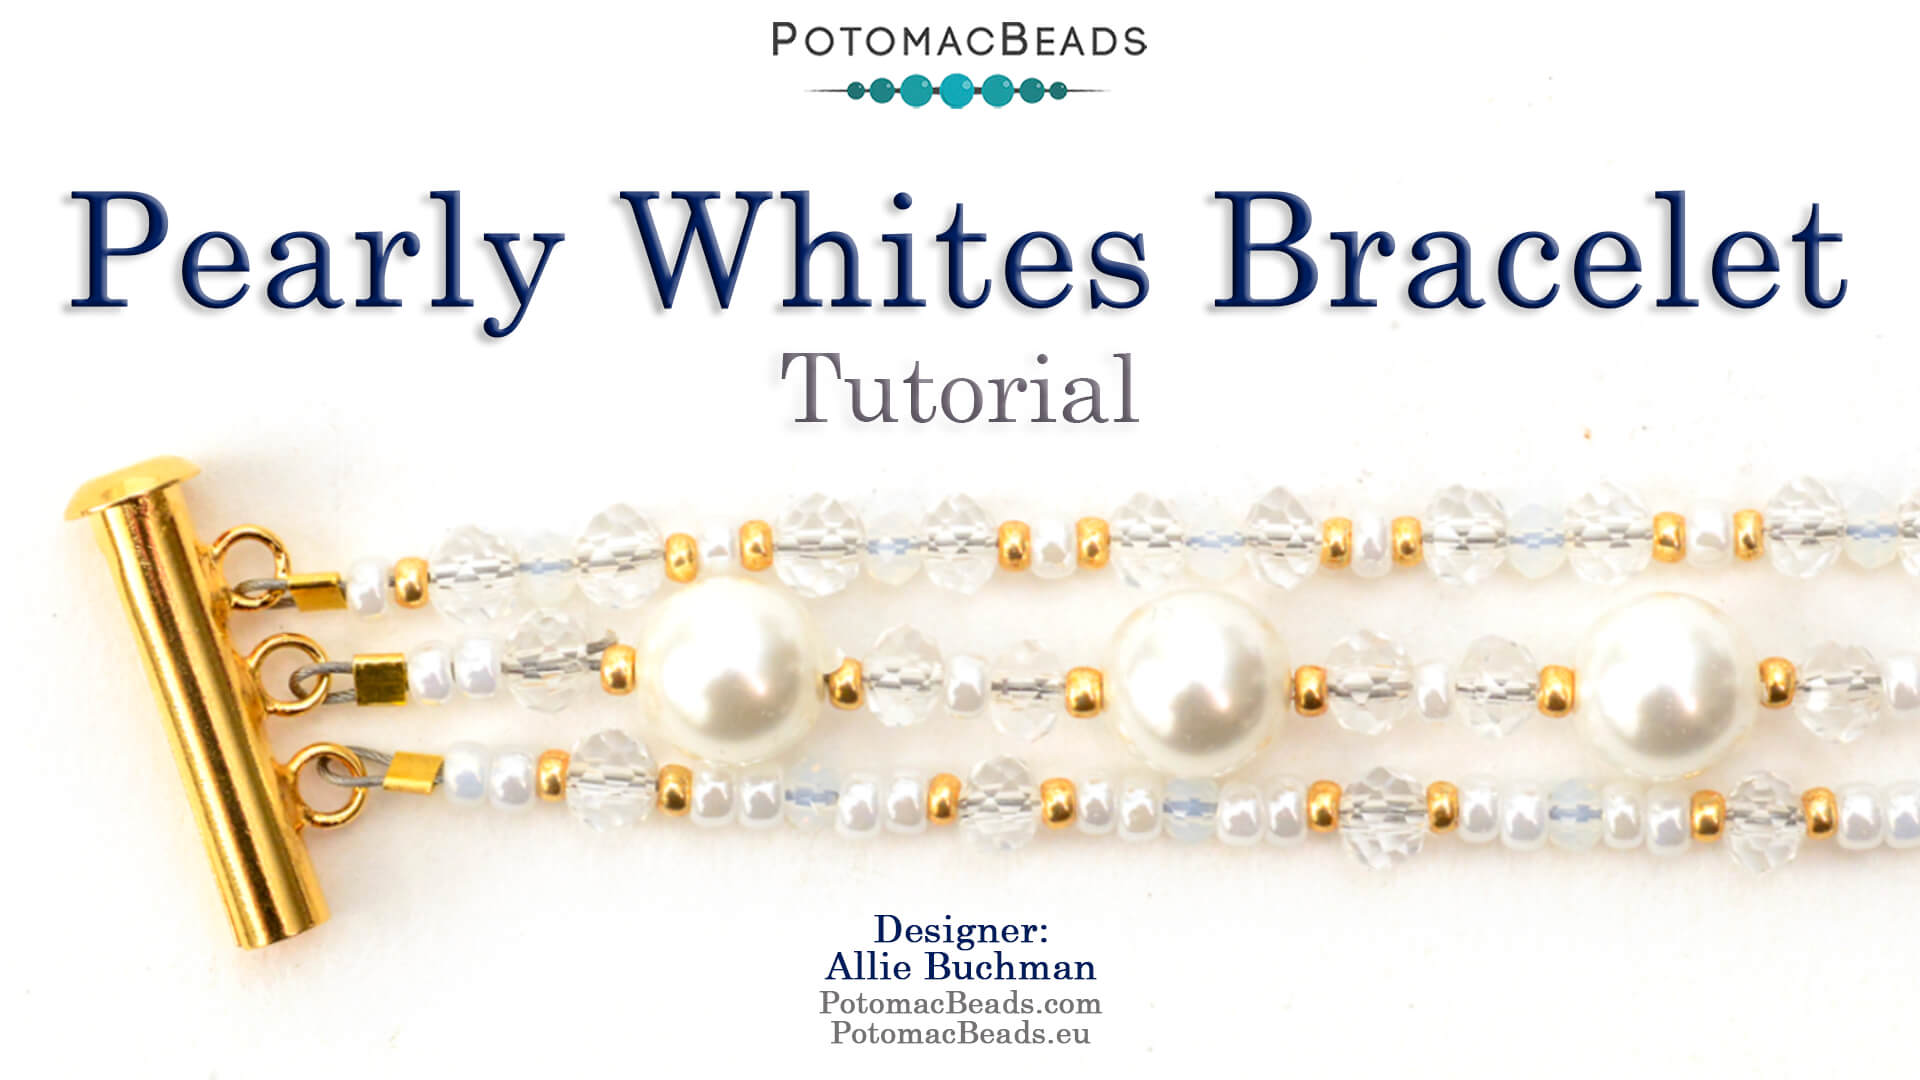 How to Bead Jewelry / Videos Sorted by Beads / Pearl Videos (Czech, Freshwater, Potomac Pearls) / Pearly Whites Bracelet Tutorial